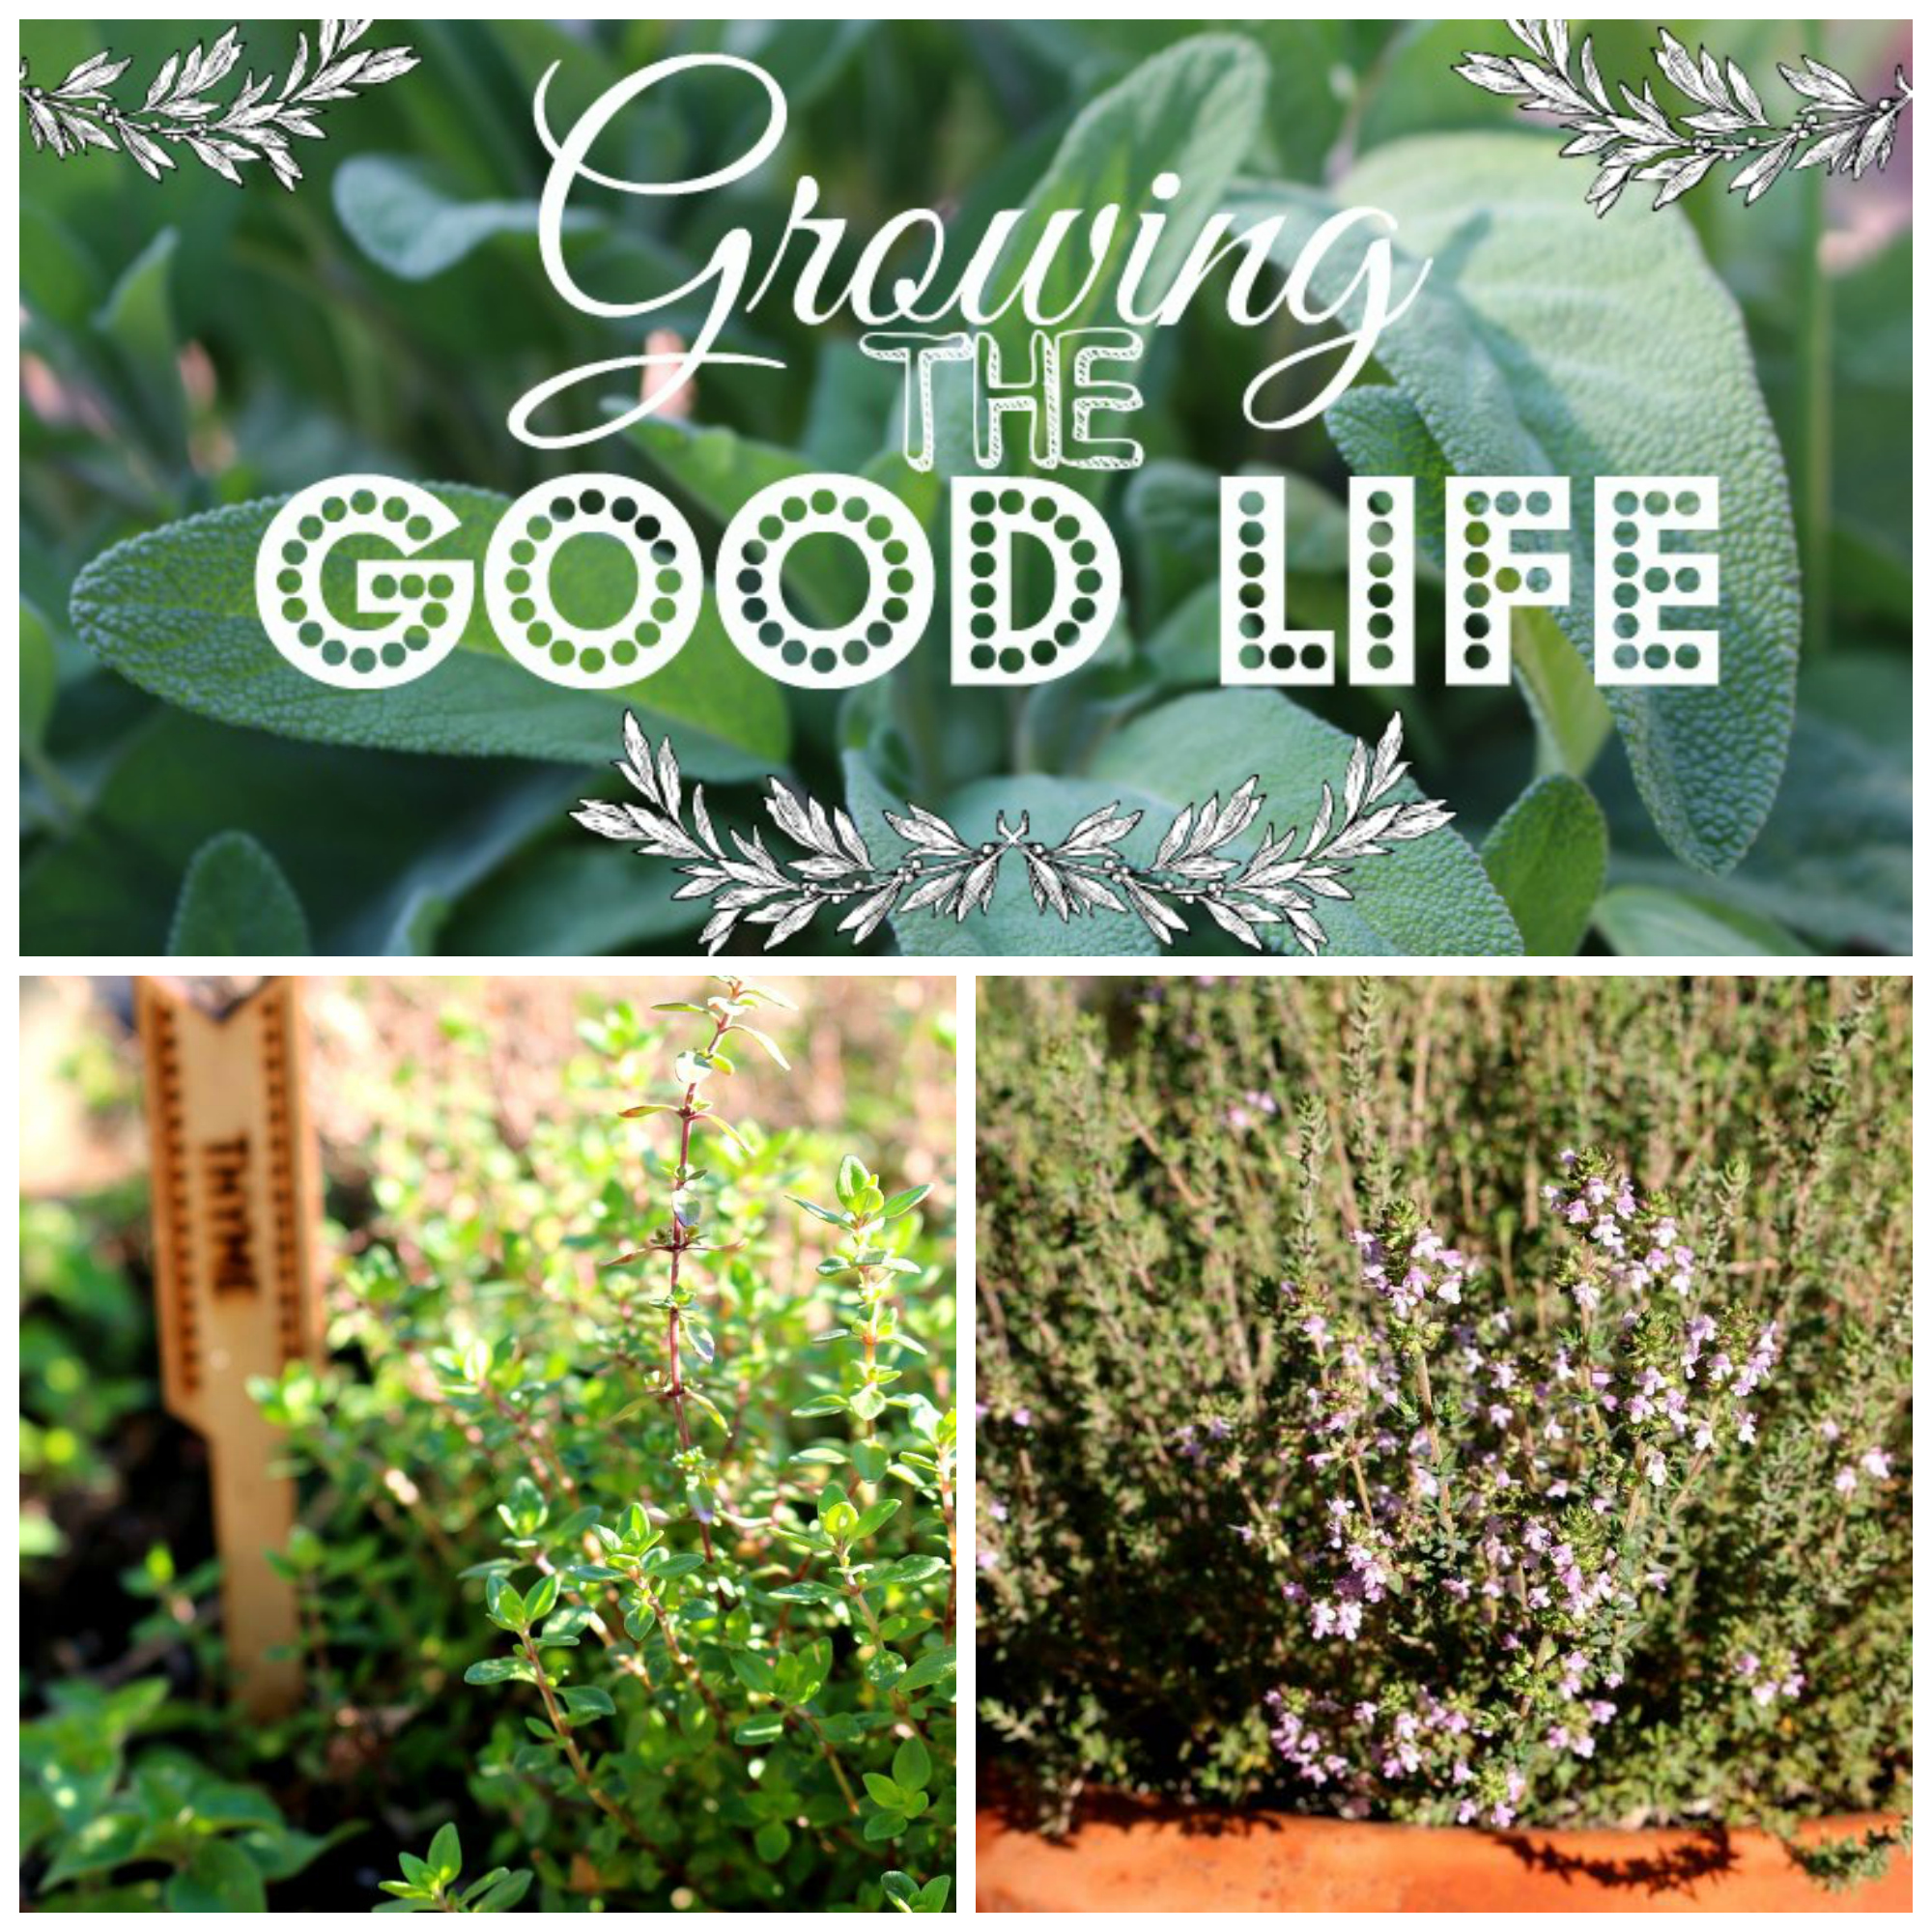 Growing the Good Life